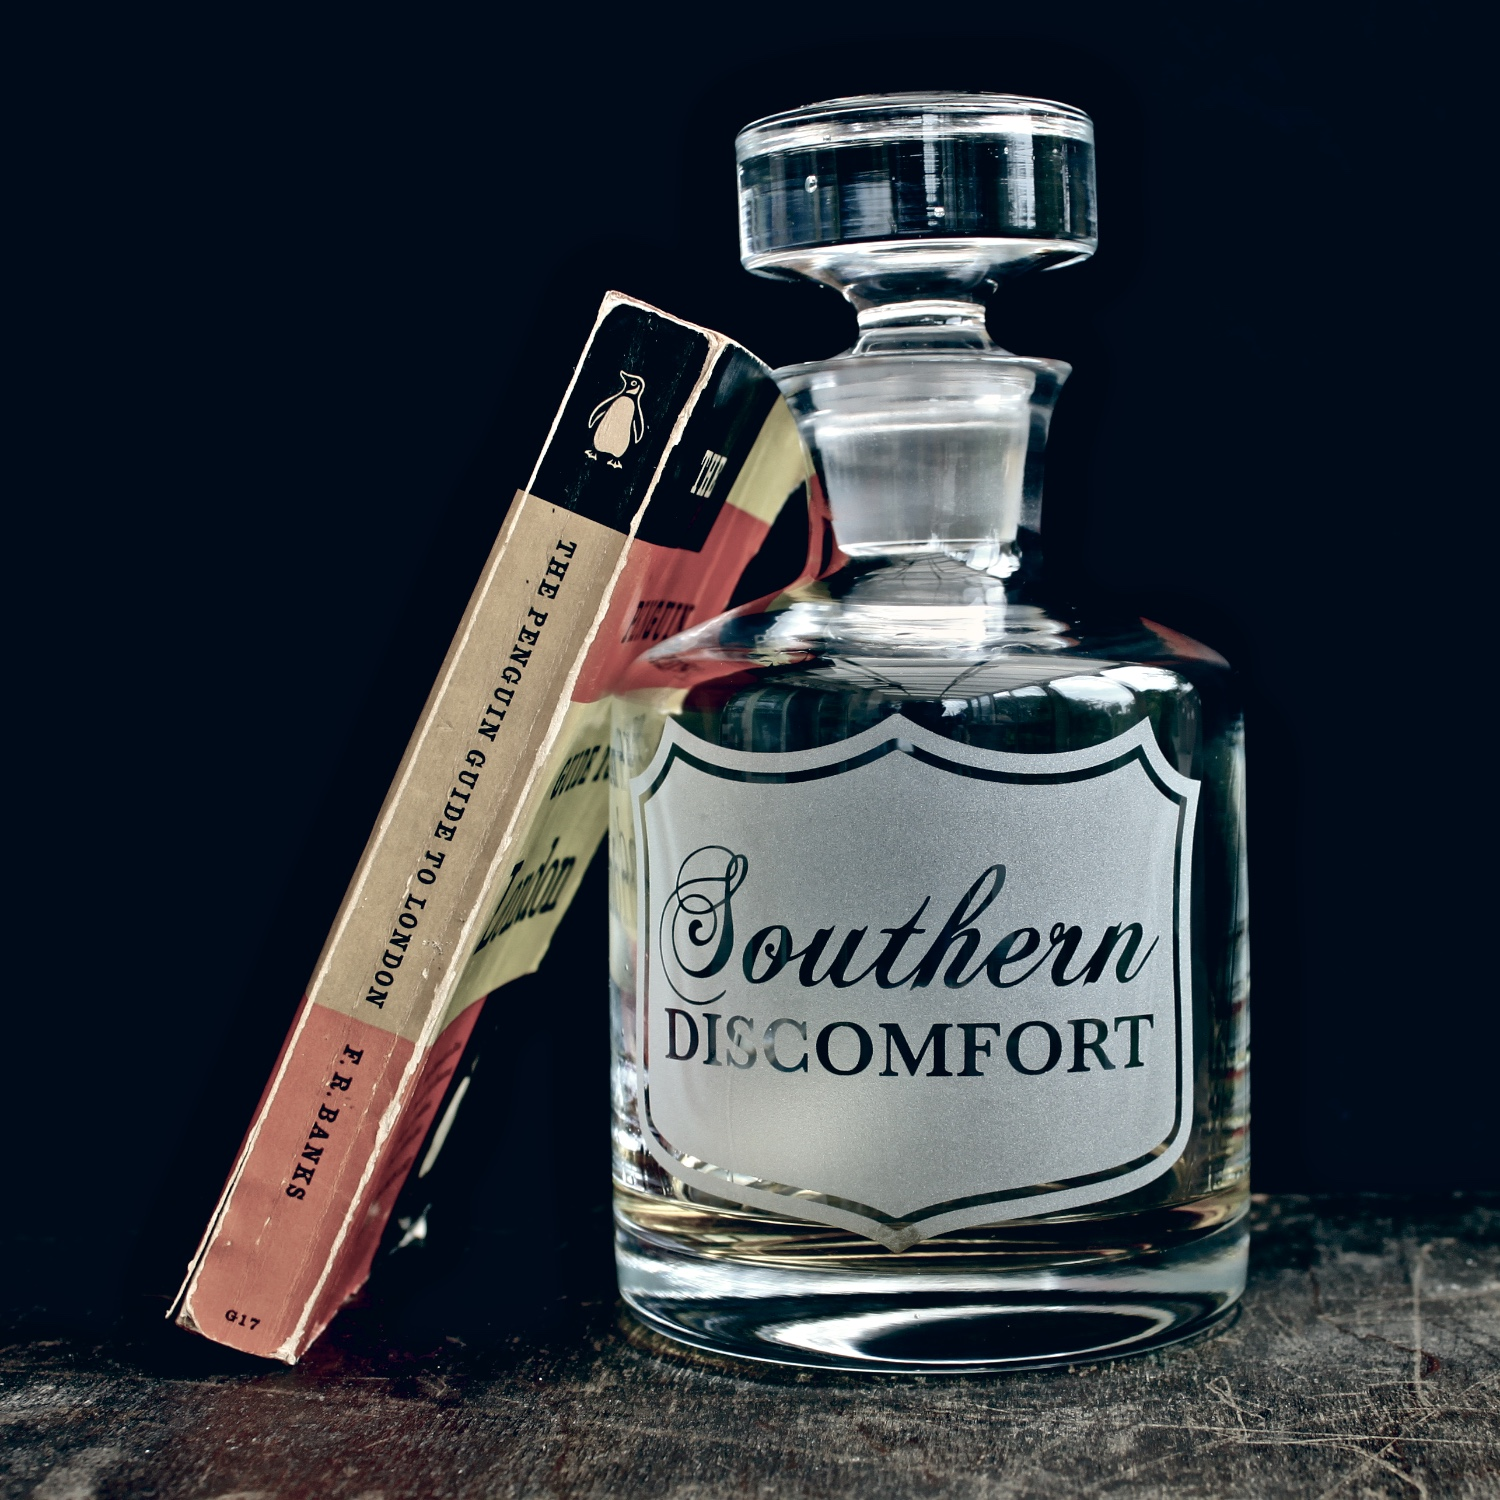 southern-discomfort-etched-decanter-vinegar-and-brown-paper.jpg